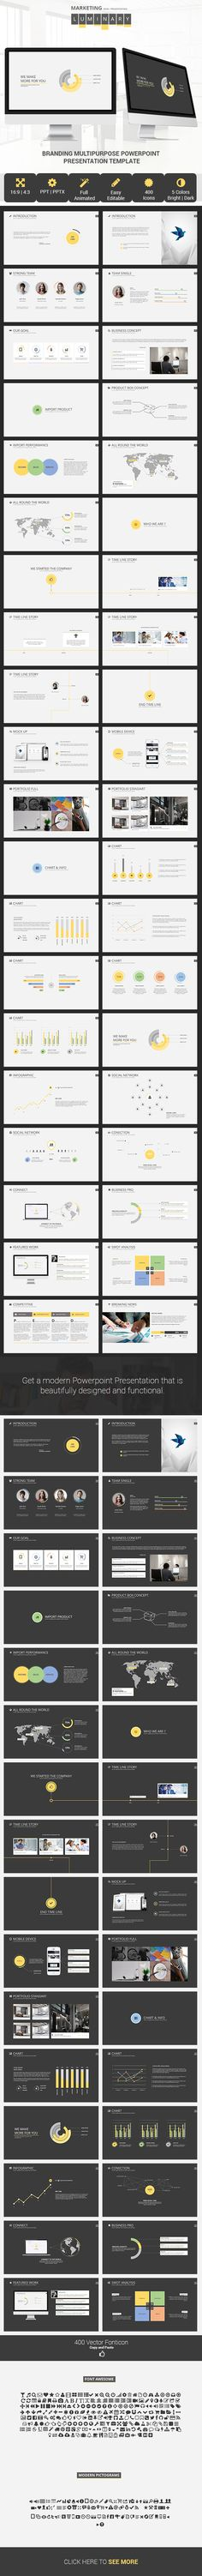 Luminary Presentation template by Uuganbayar D, via Behance